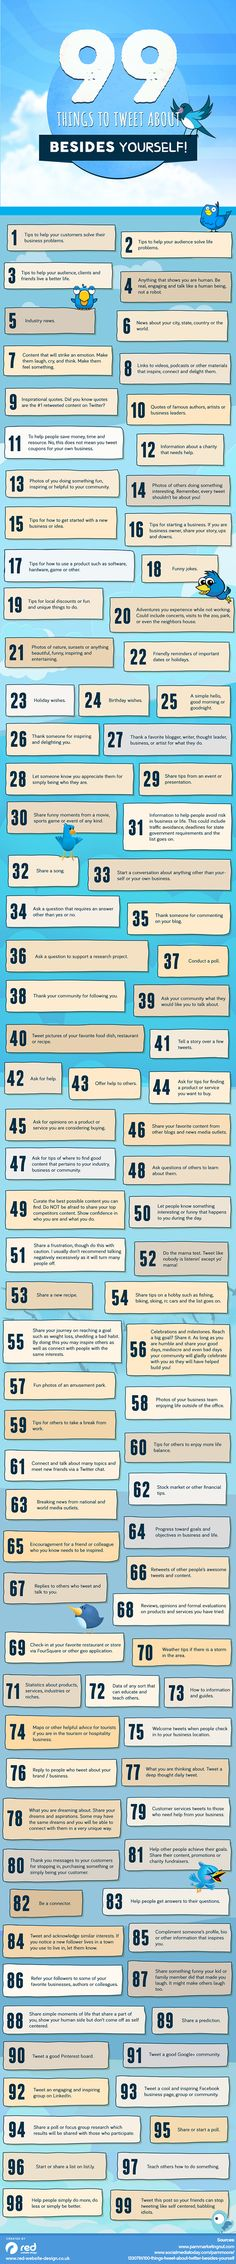 99 Things to Tweet About Besides Yourself [Infographic]    By: Red Website Design via ScoopIt   #twitter #socialmedia #socialmediamarketing #infographic